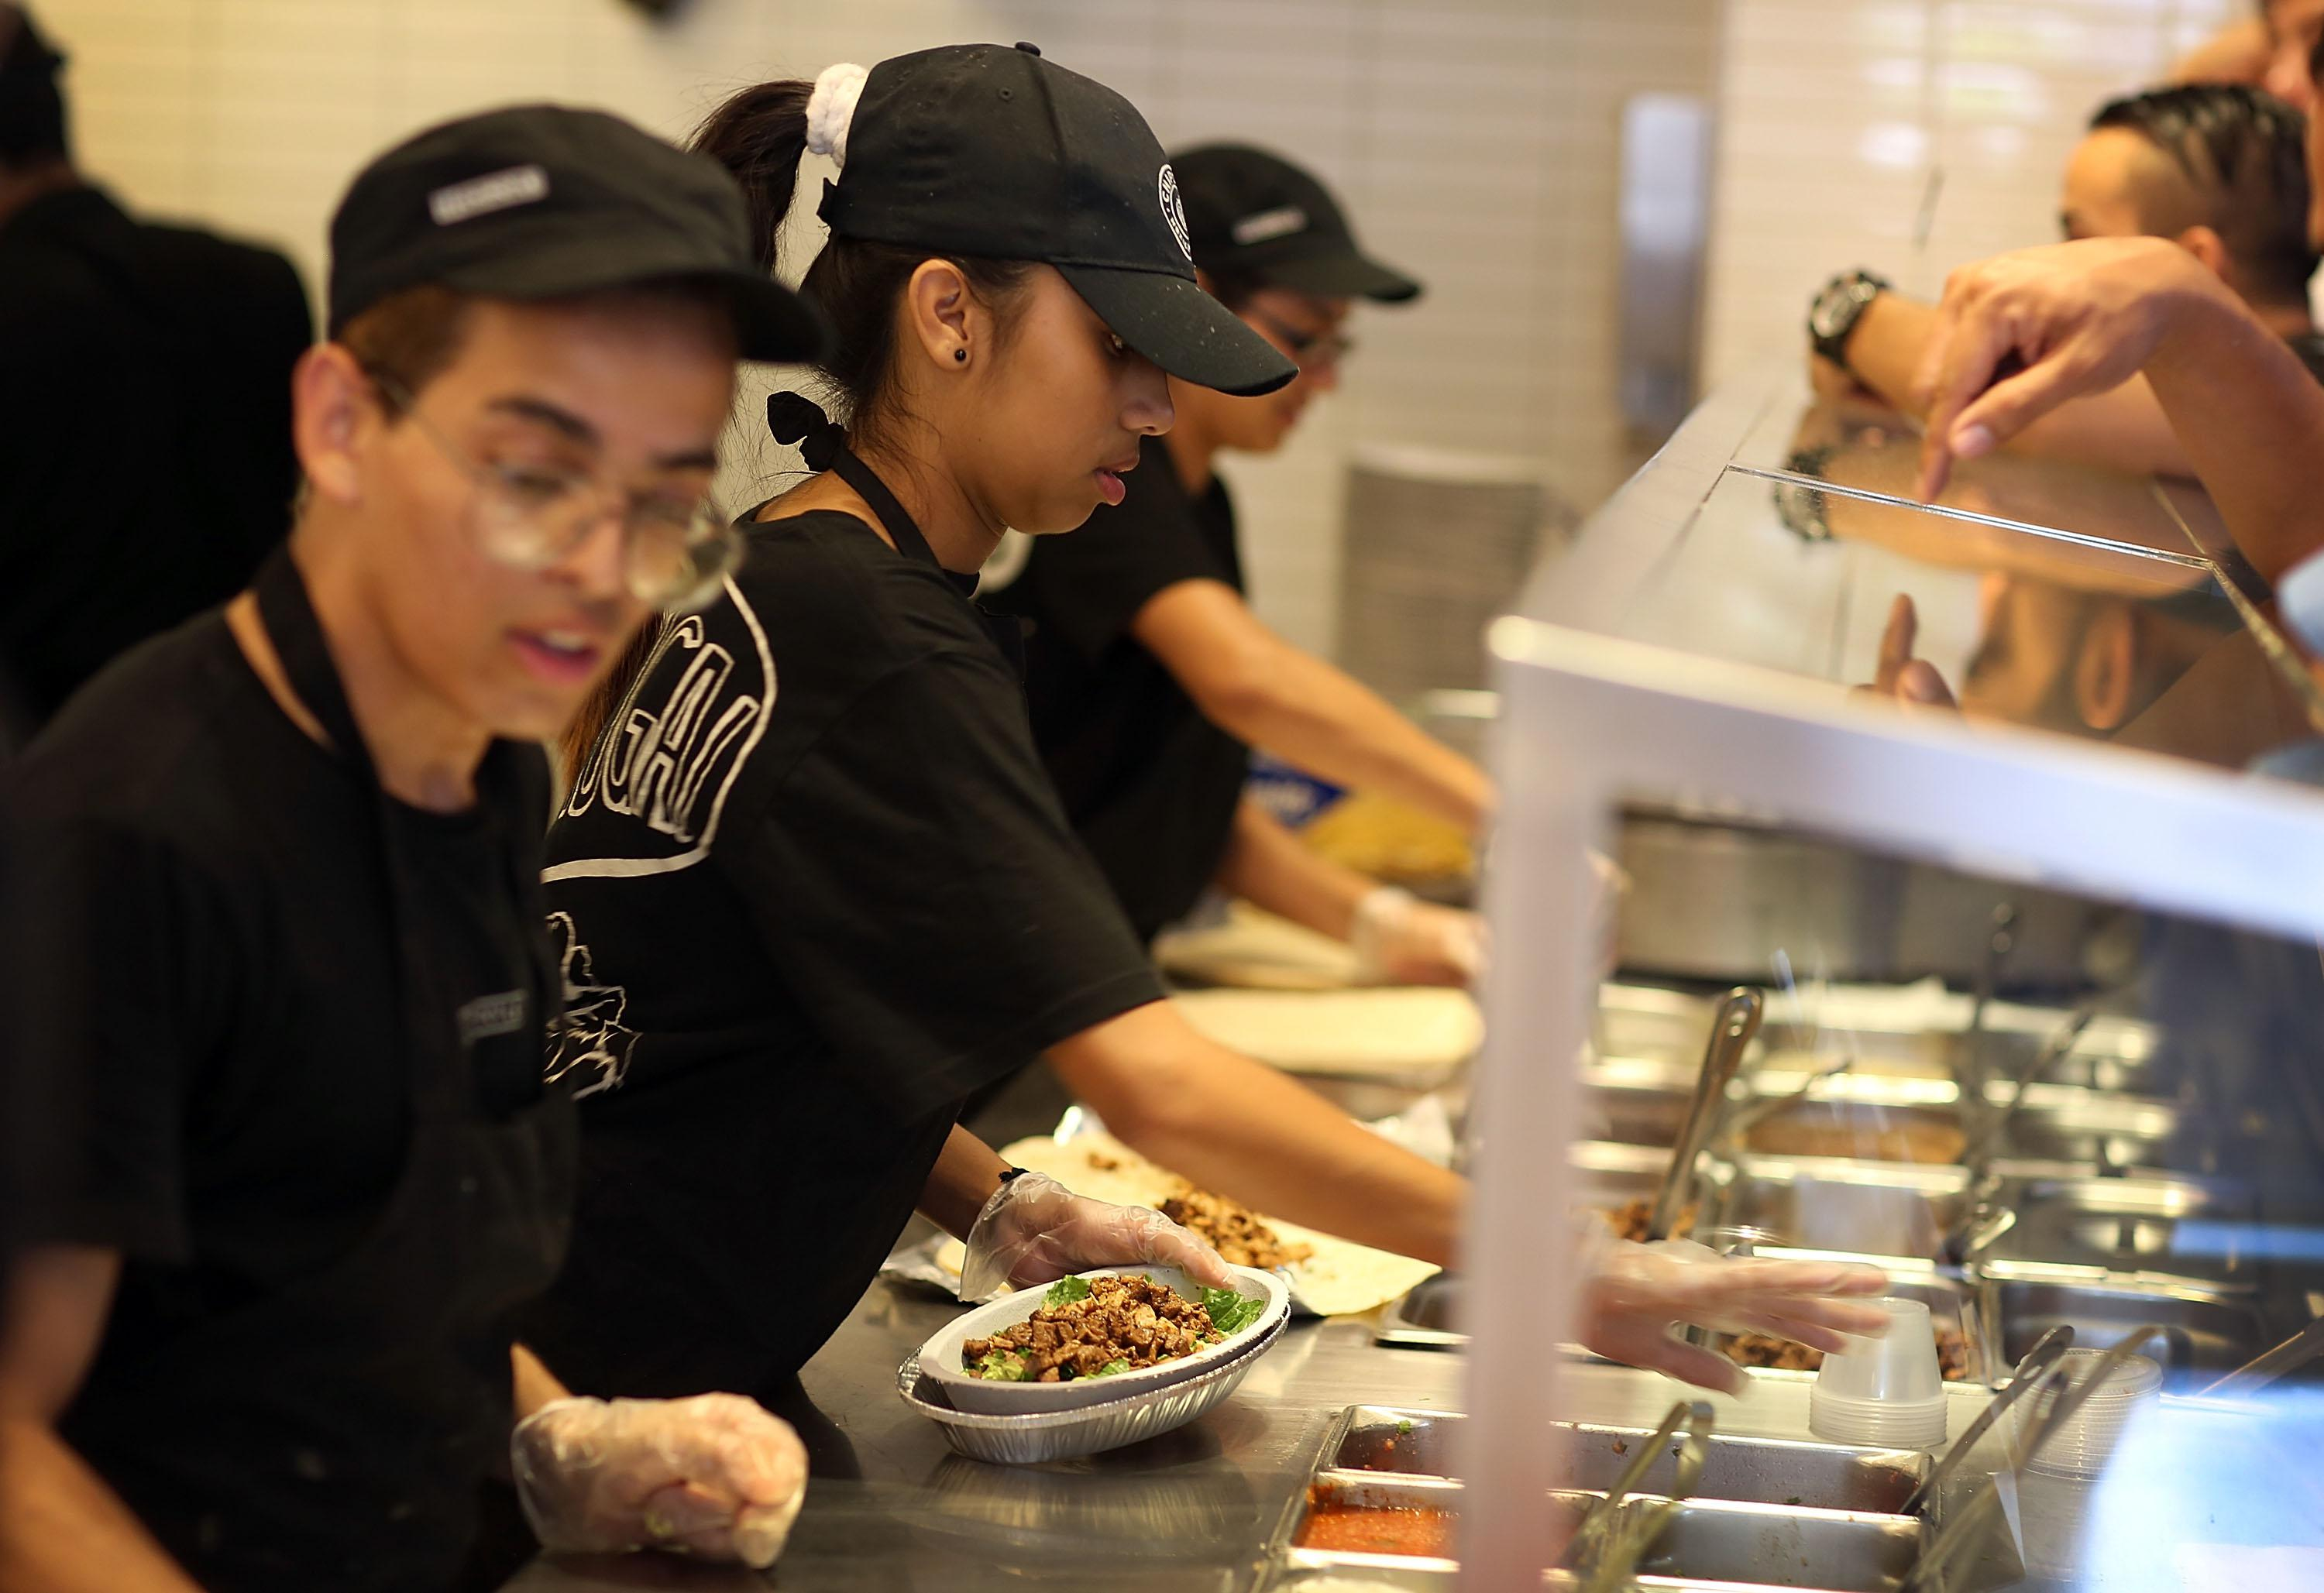 Chipotle restaurant workers fill orders for customers in 2015 in Miami.